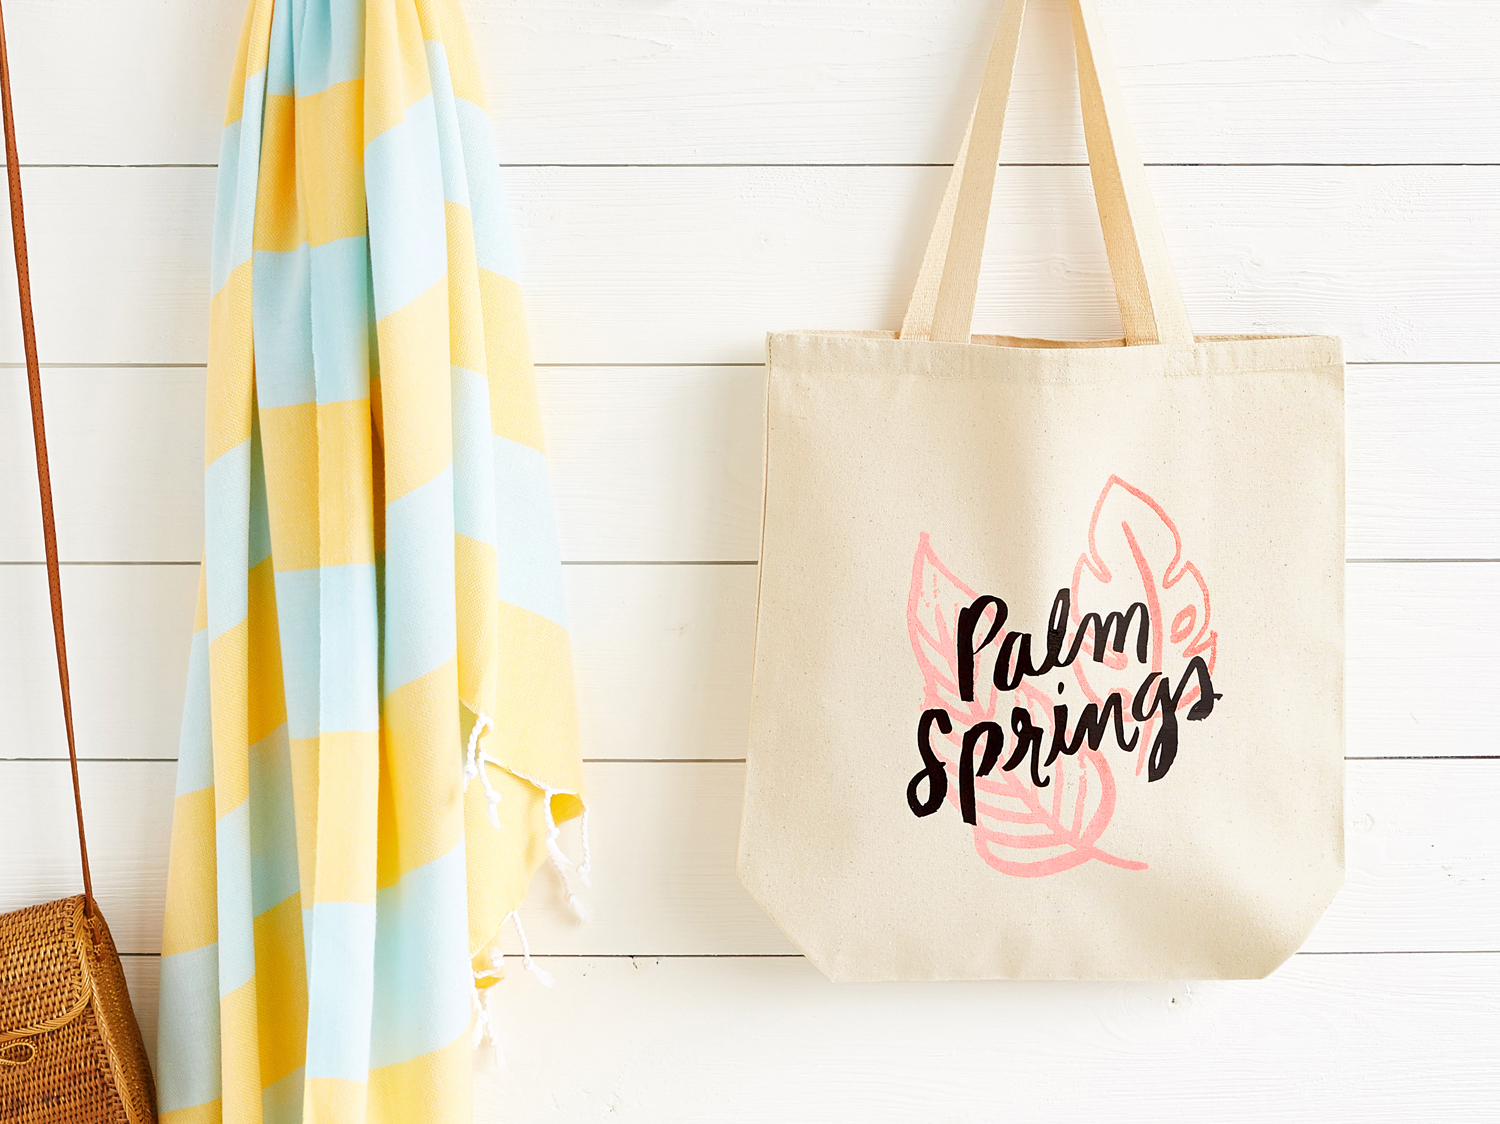 Hand-lettering and illustration for screen-printed bag